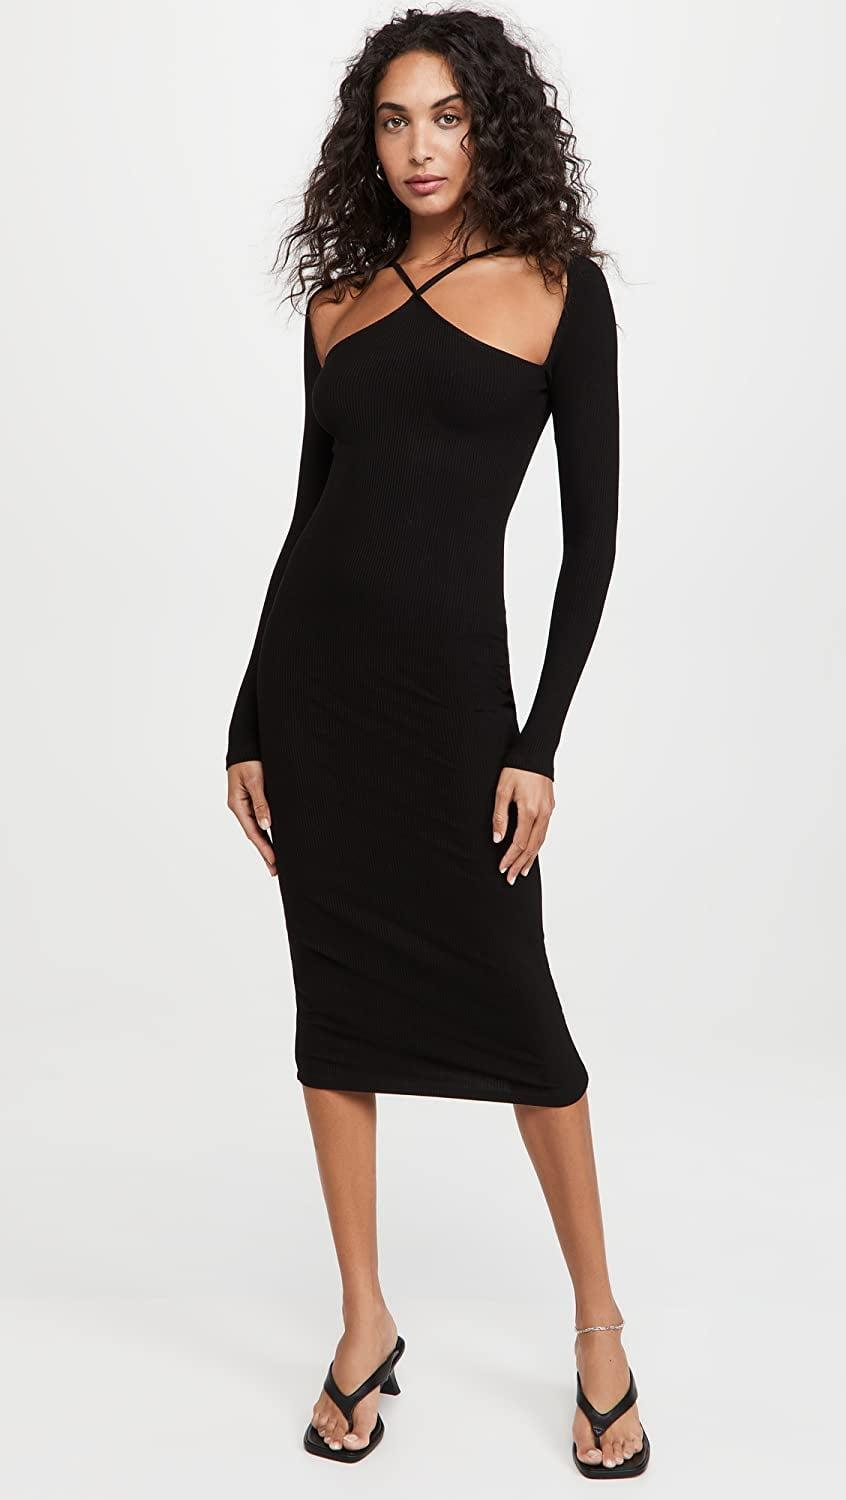 <p>This <span>Lioness Crossing The Line Midi Dress</span> ($79) will make you look and feel like the main character. It looks so good, and we can confirm the fabric is soft, stretchy, and comfortable to wear.</p>